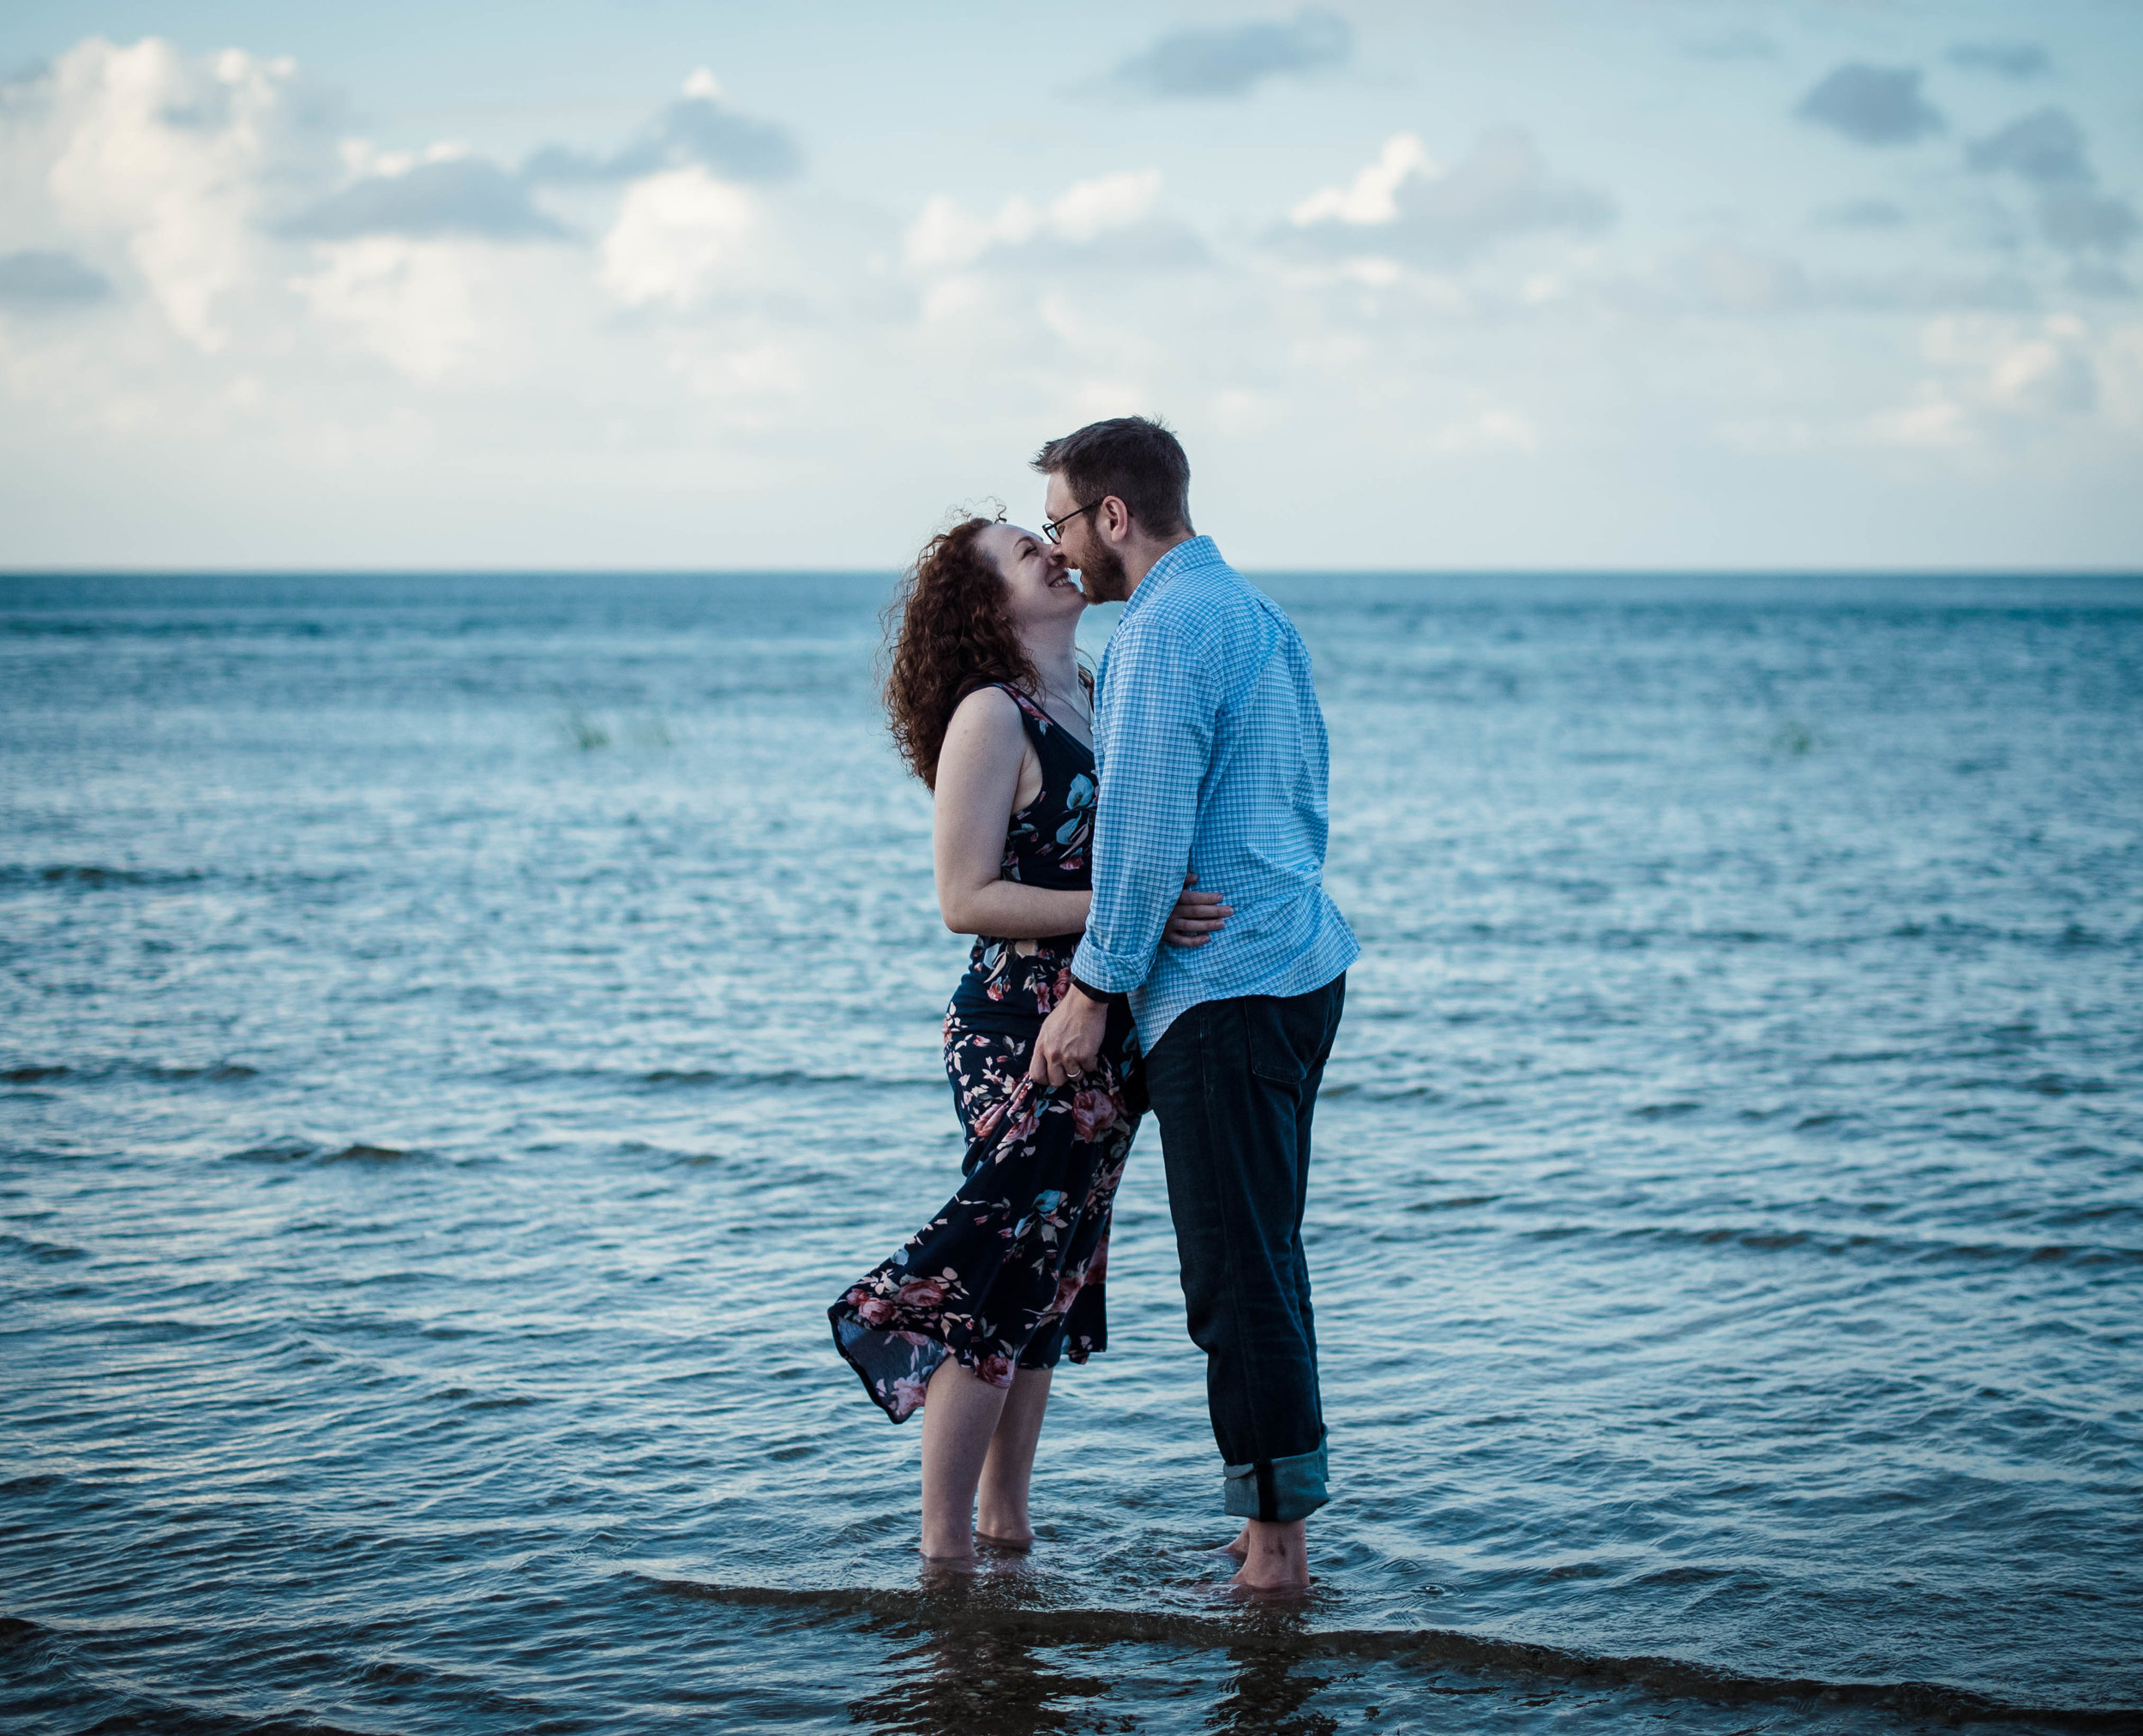 Heather & Mike 7.14.18 - Leanne made us feel comfortable, and the pictures she delivered were truly beautiful. It was our pregnancy announcement shoot and the first time we had been photographed since our wedding. I cannot wait to use Leanne in the future for all our photography needs.